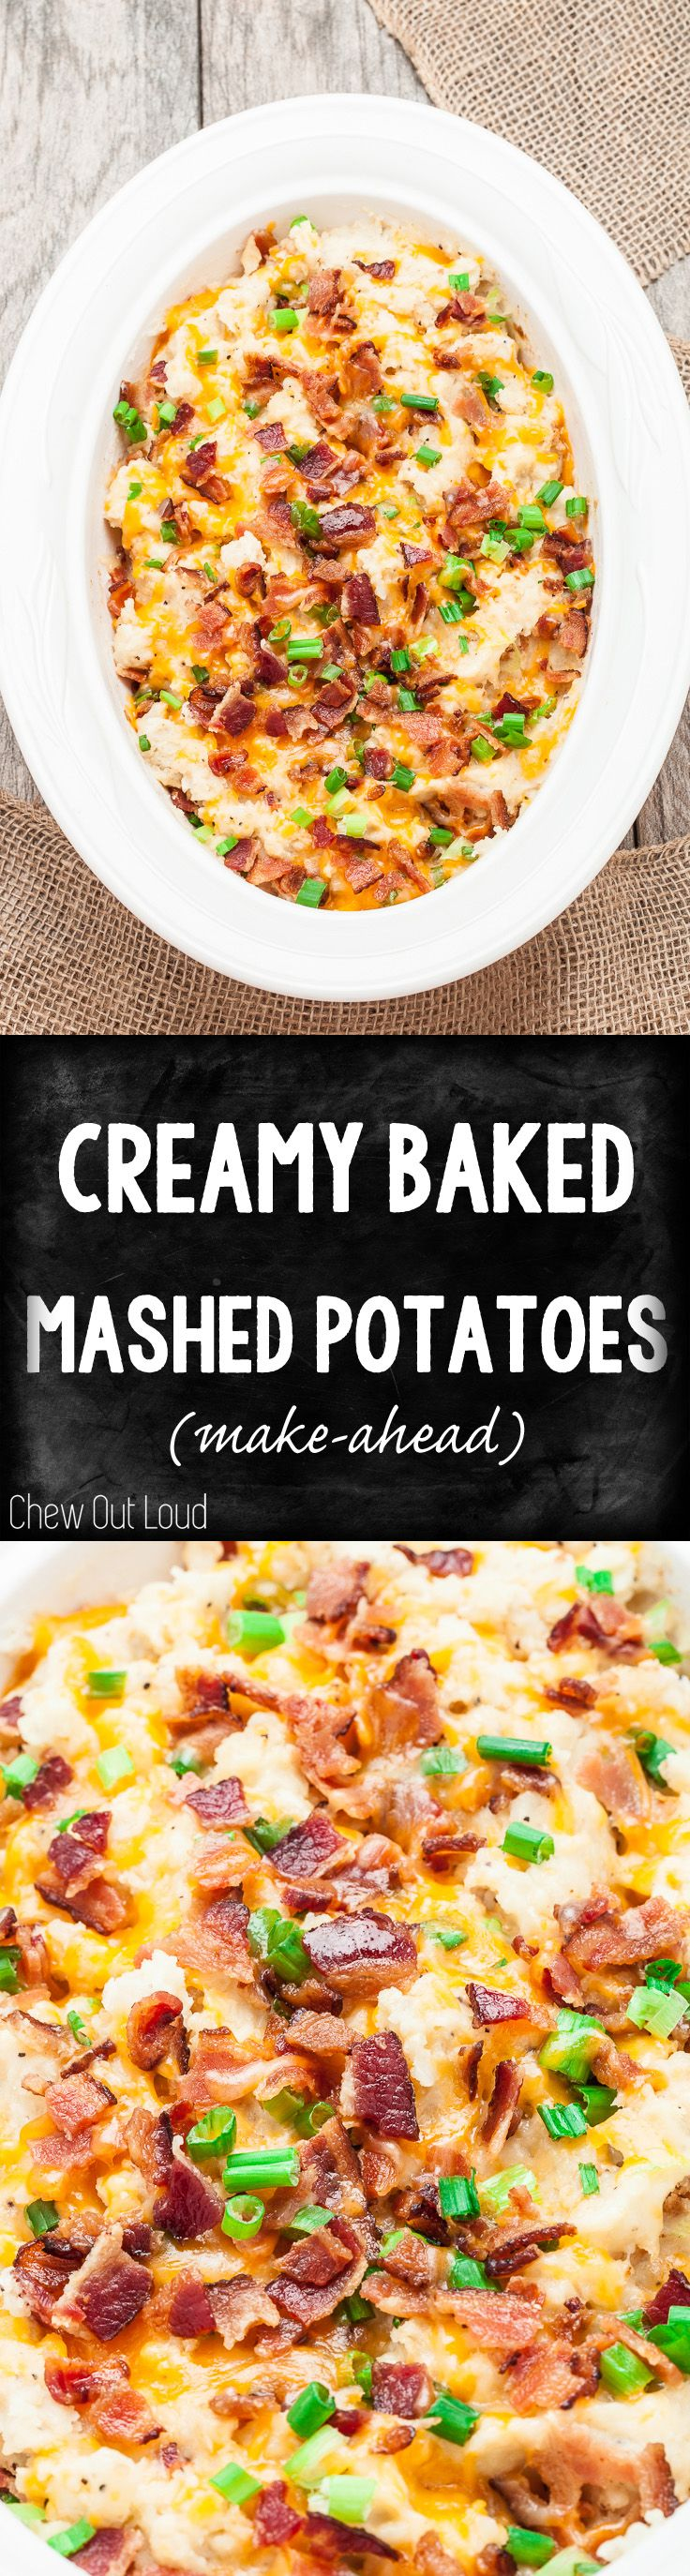 Make-Ahead Creamy Baked Mashed Potatoes! Perfect for the busy nights and holidays. Easy and so irresistible. #holidays #potatoes #side